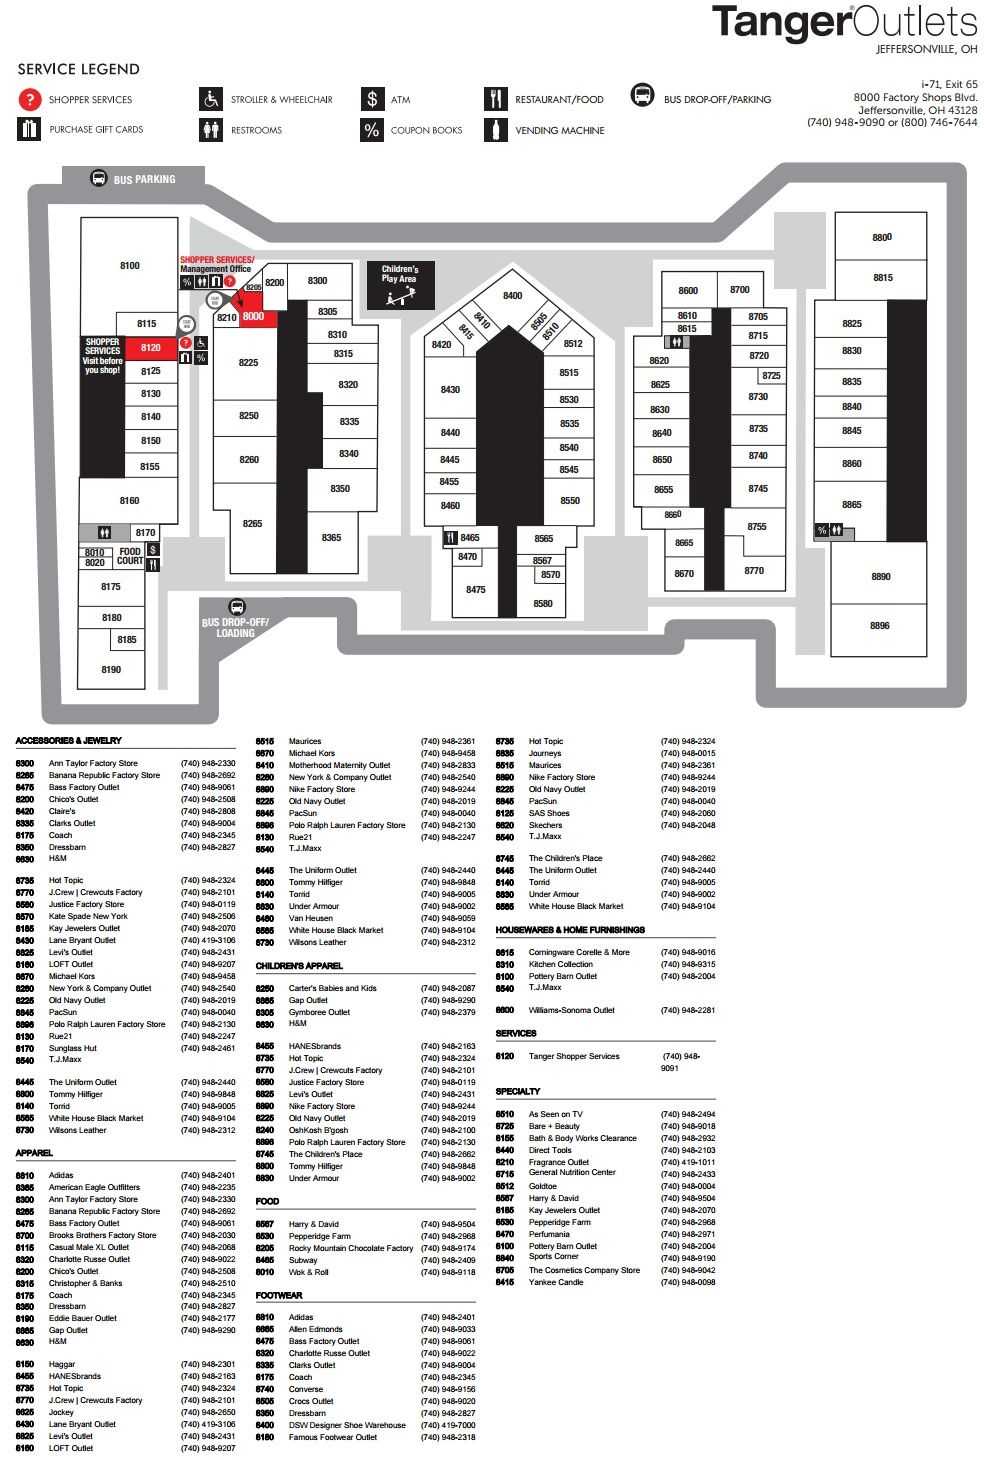 tanger outlets jeffersonville ohio map Tanger Outlets Jeffersonville Shopping Plan Outlets Ohio Mall